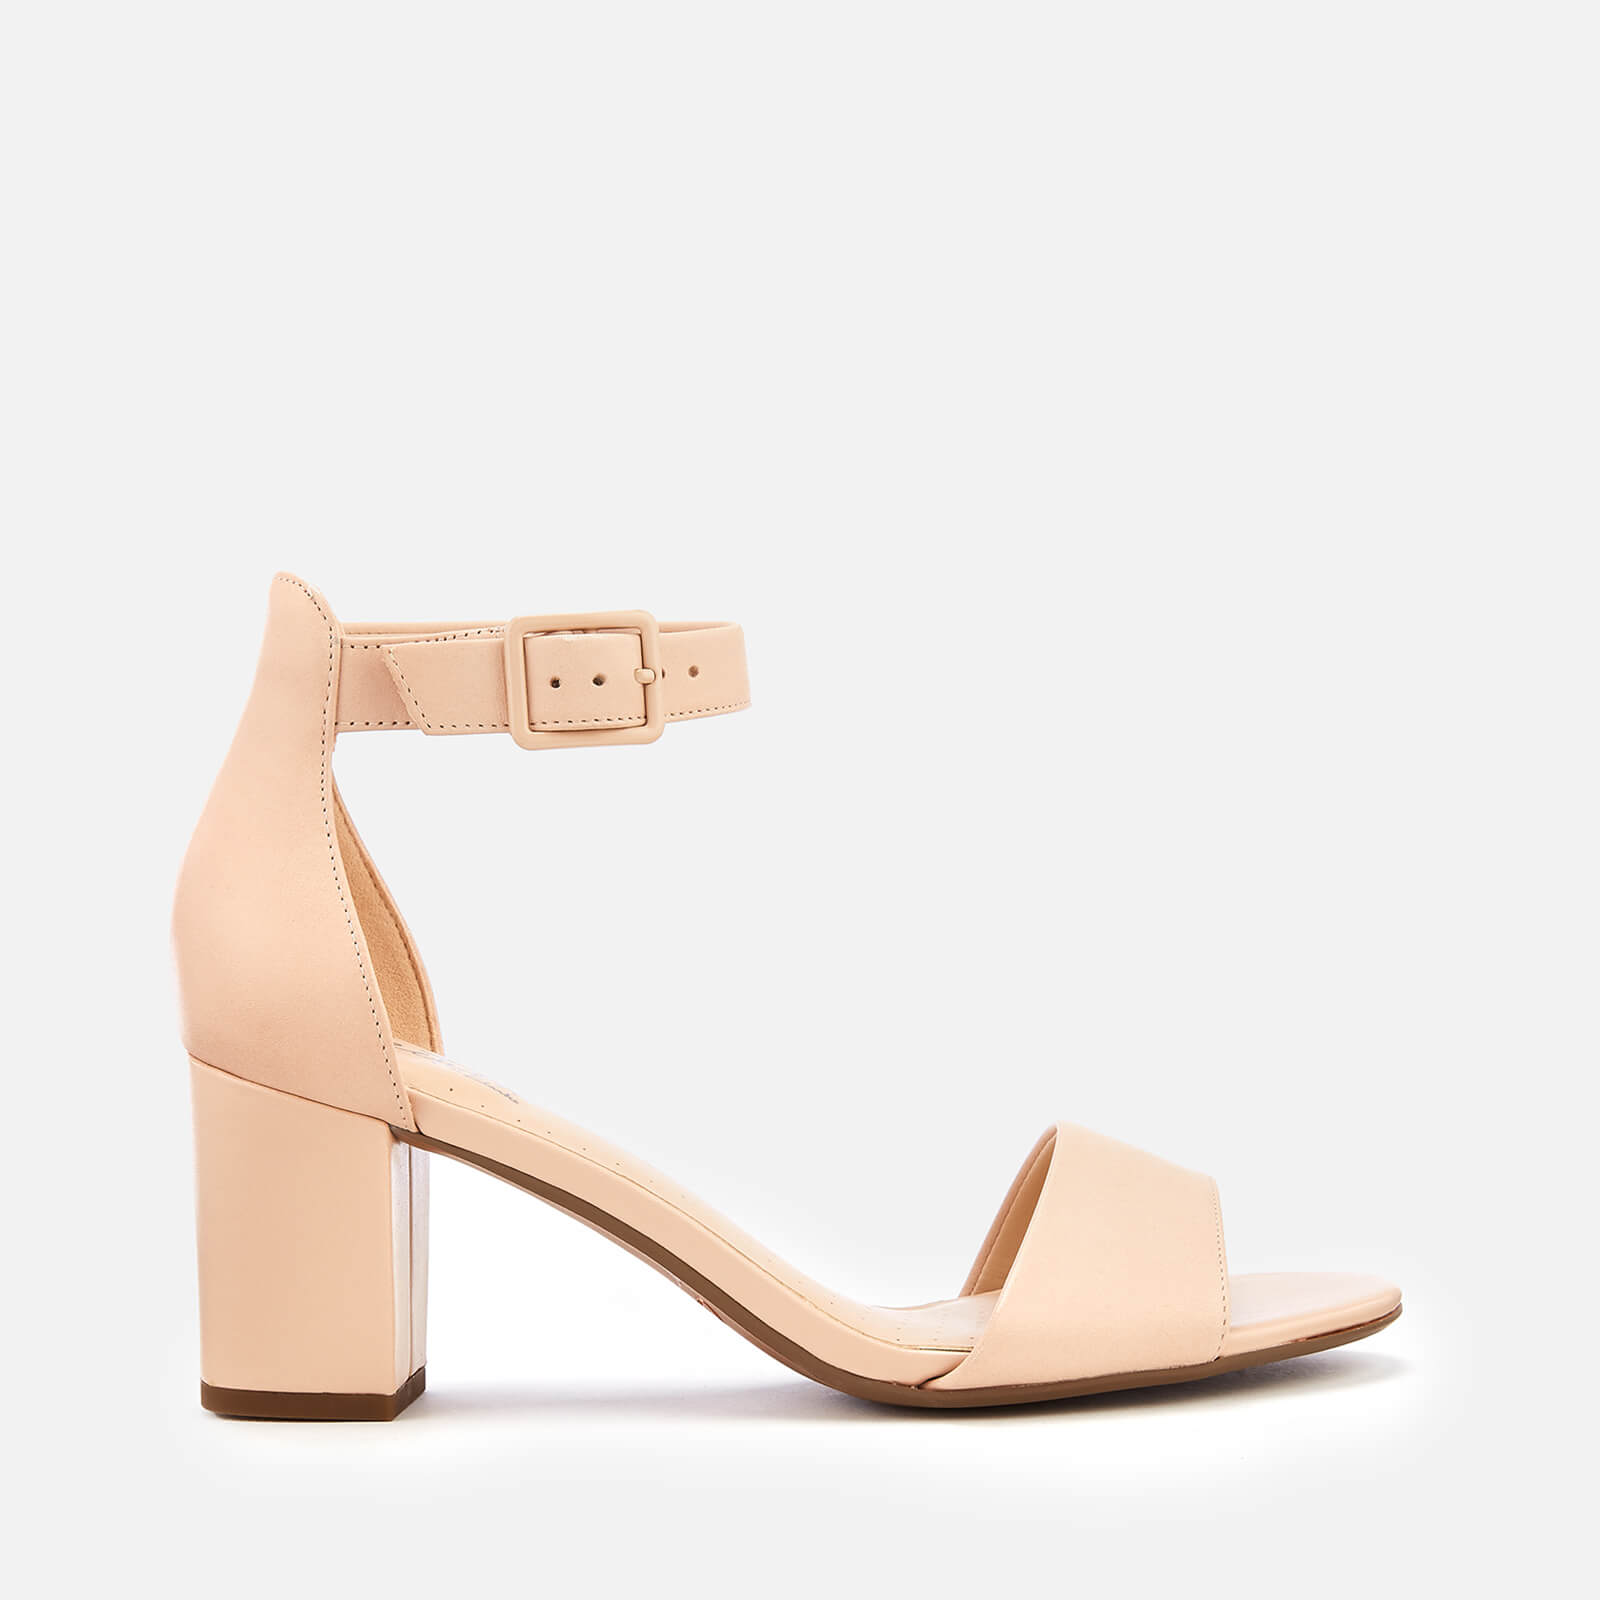 17c0b9a6f Clarks Women's Deva Mae Leather Block Heeled Sandals - Nude | FREE UK  Delivery | Allsole